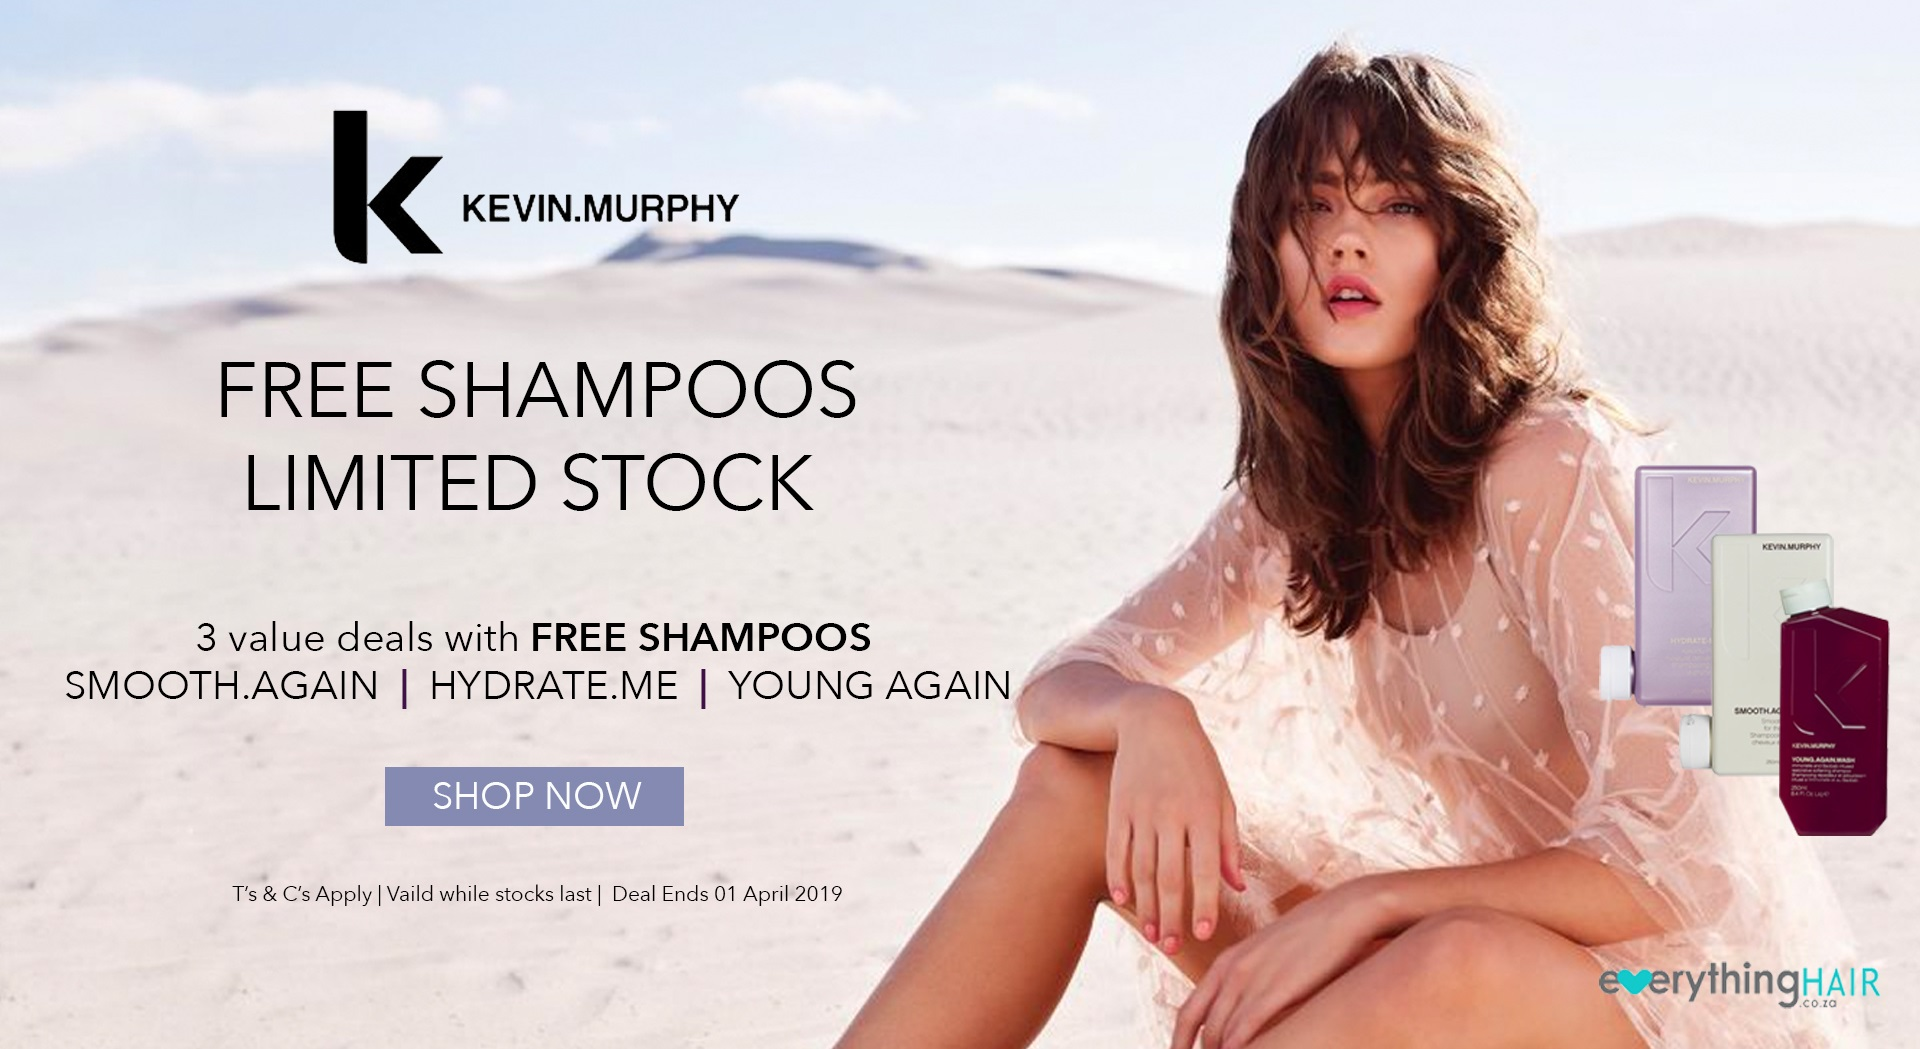 KEVIN MURPHY VALUE DEALS